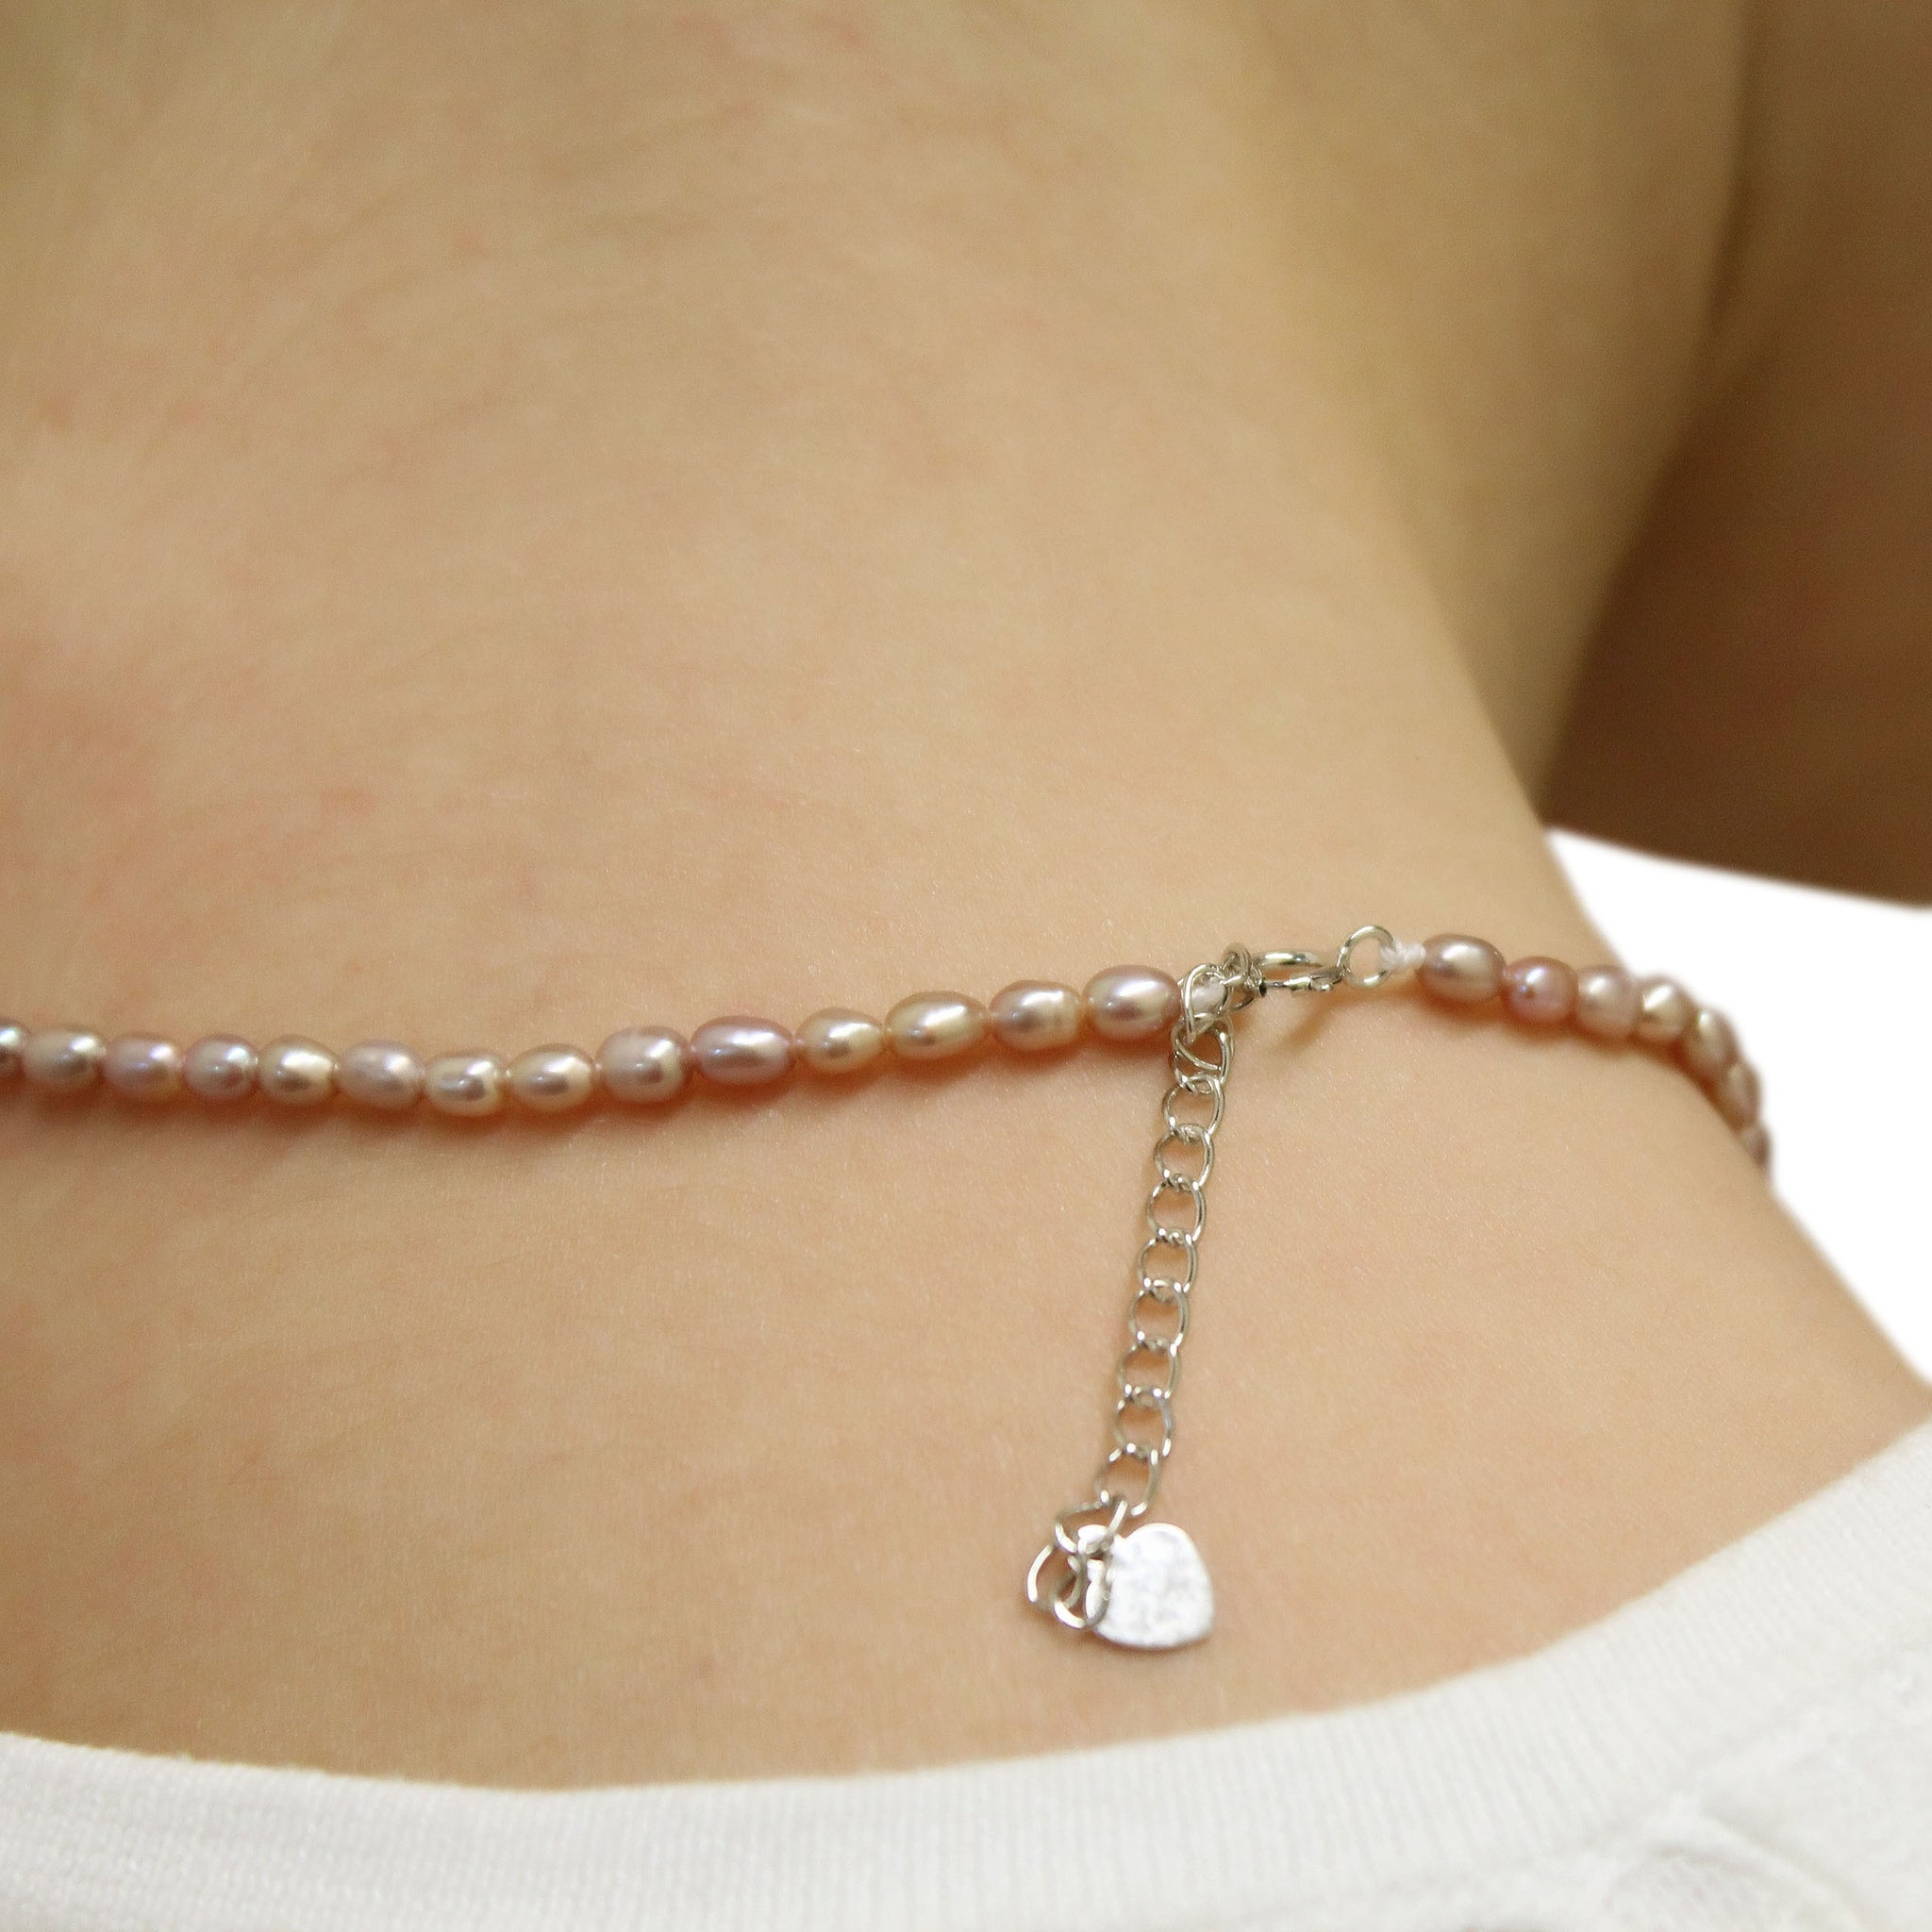 TINY PEARLS - Pearl Necklace for Girls eVdfHR80V